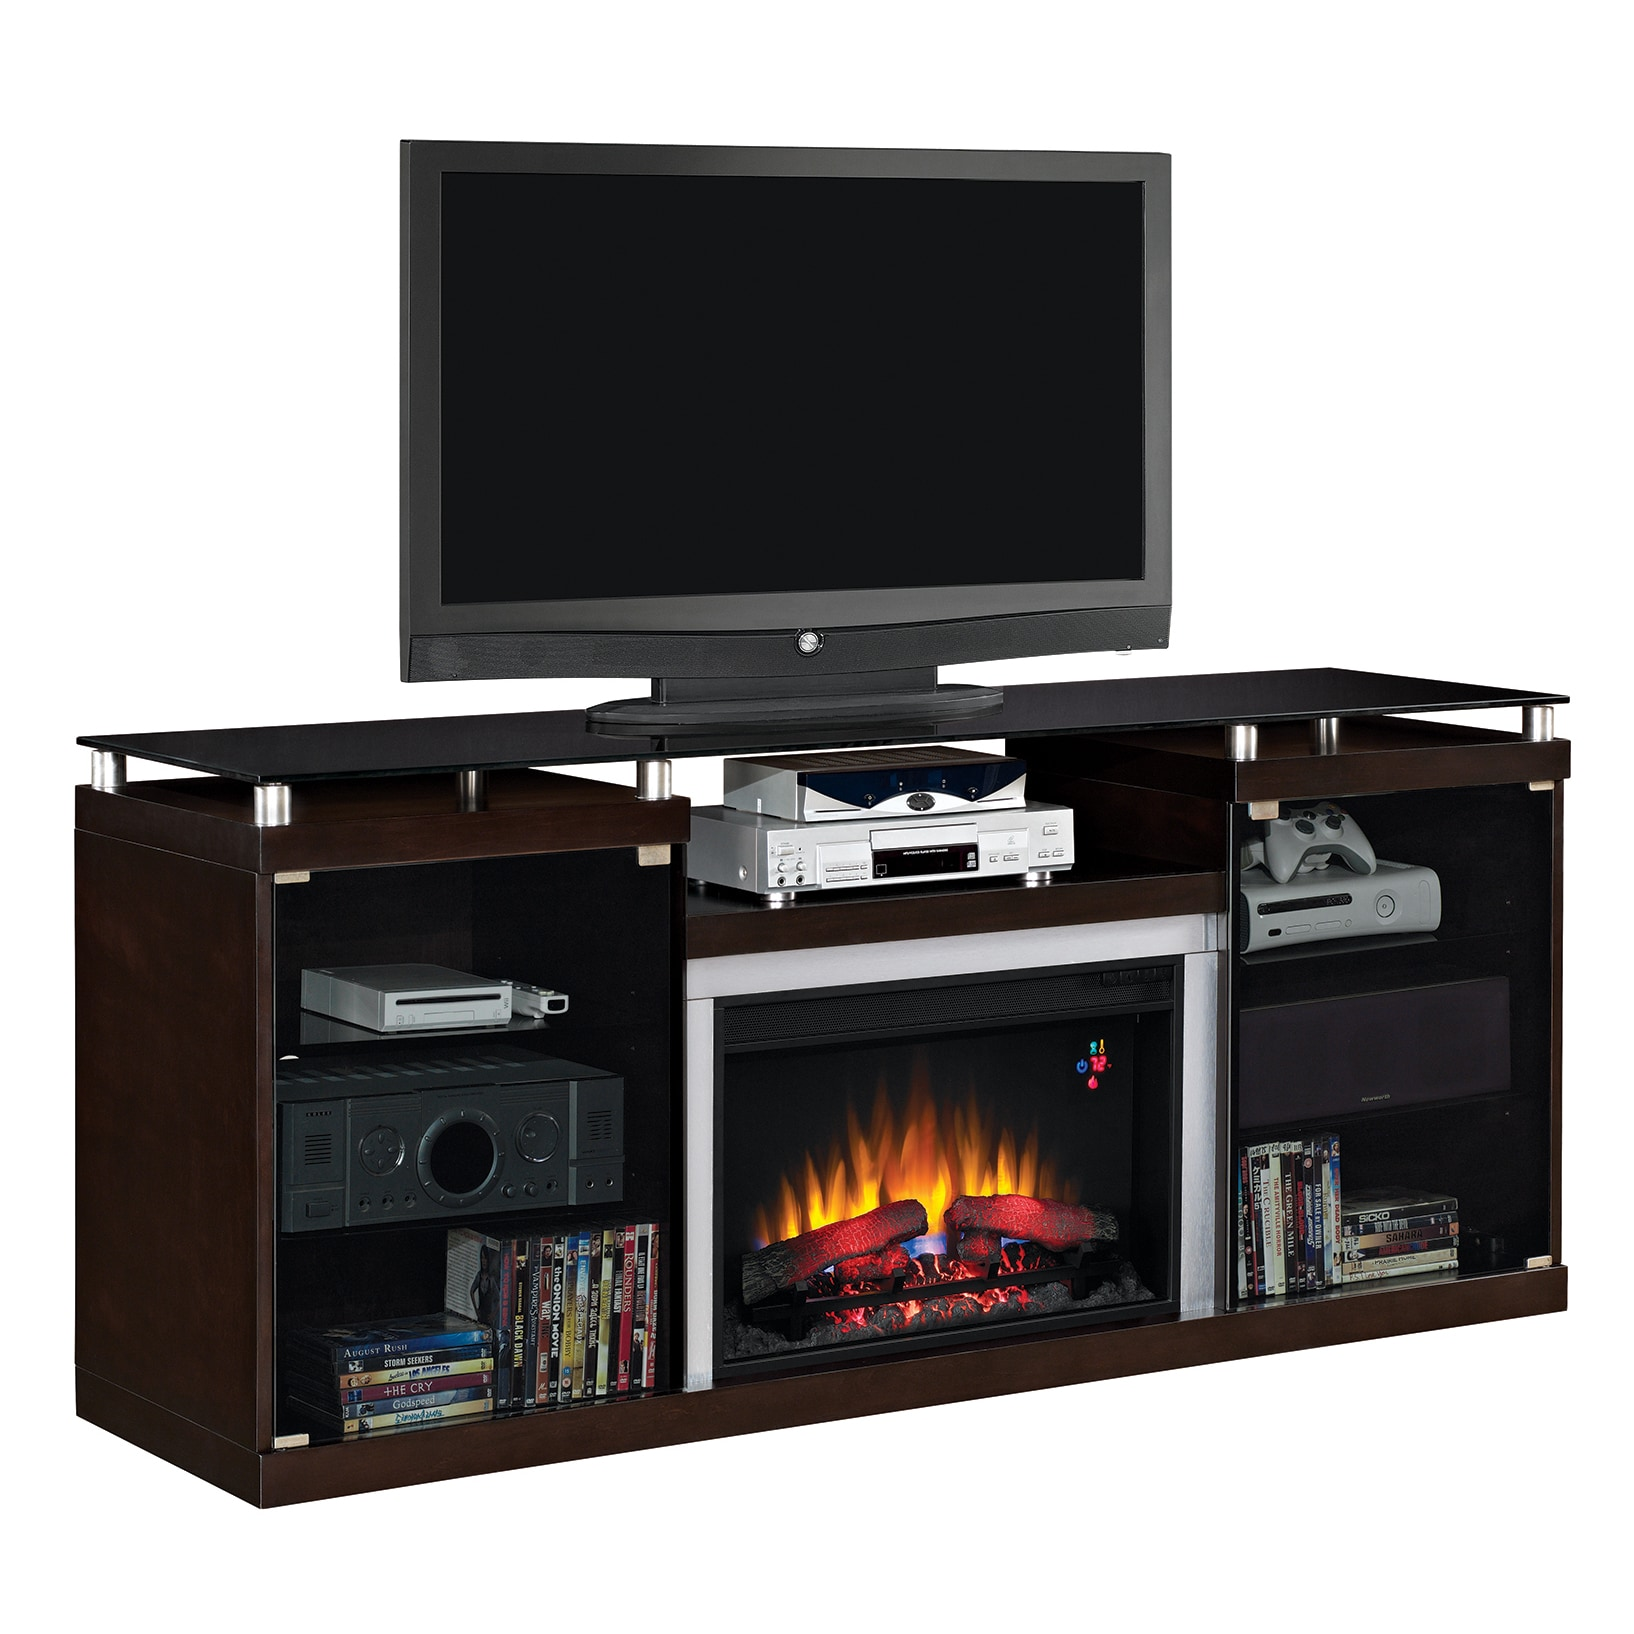 Shop Albright Tv Stand With 26 Inch Electric Fireplace  Espresso